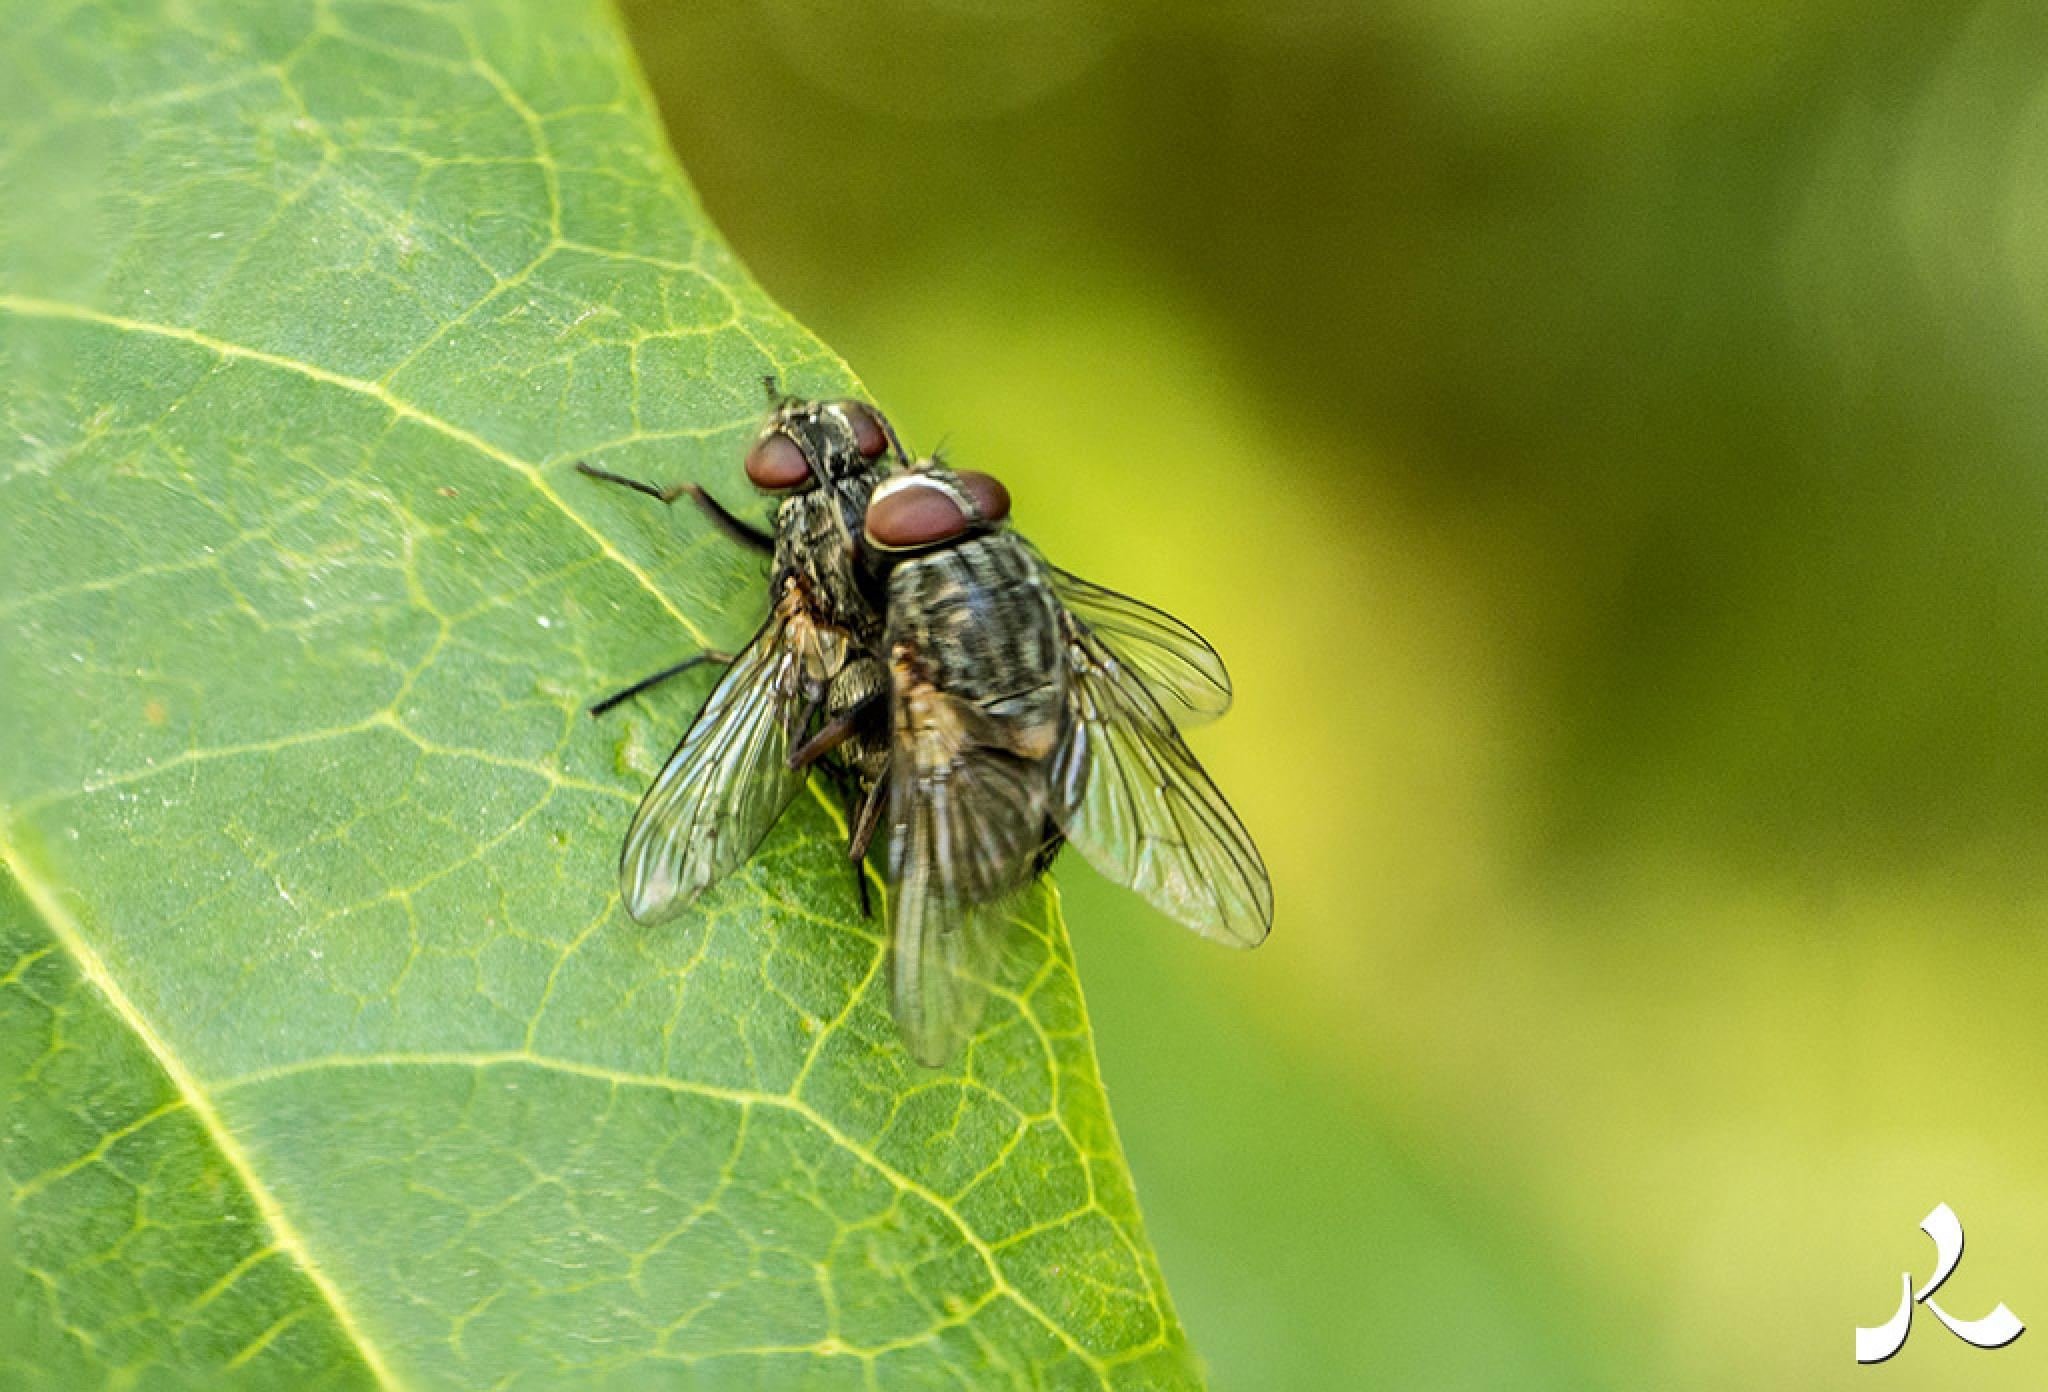 Flies in love  by jacquesraffin